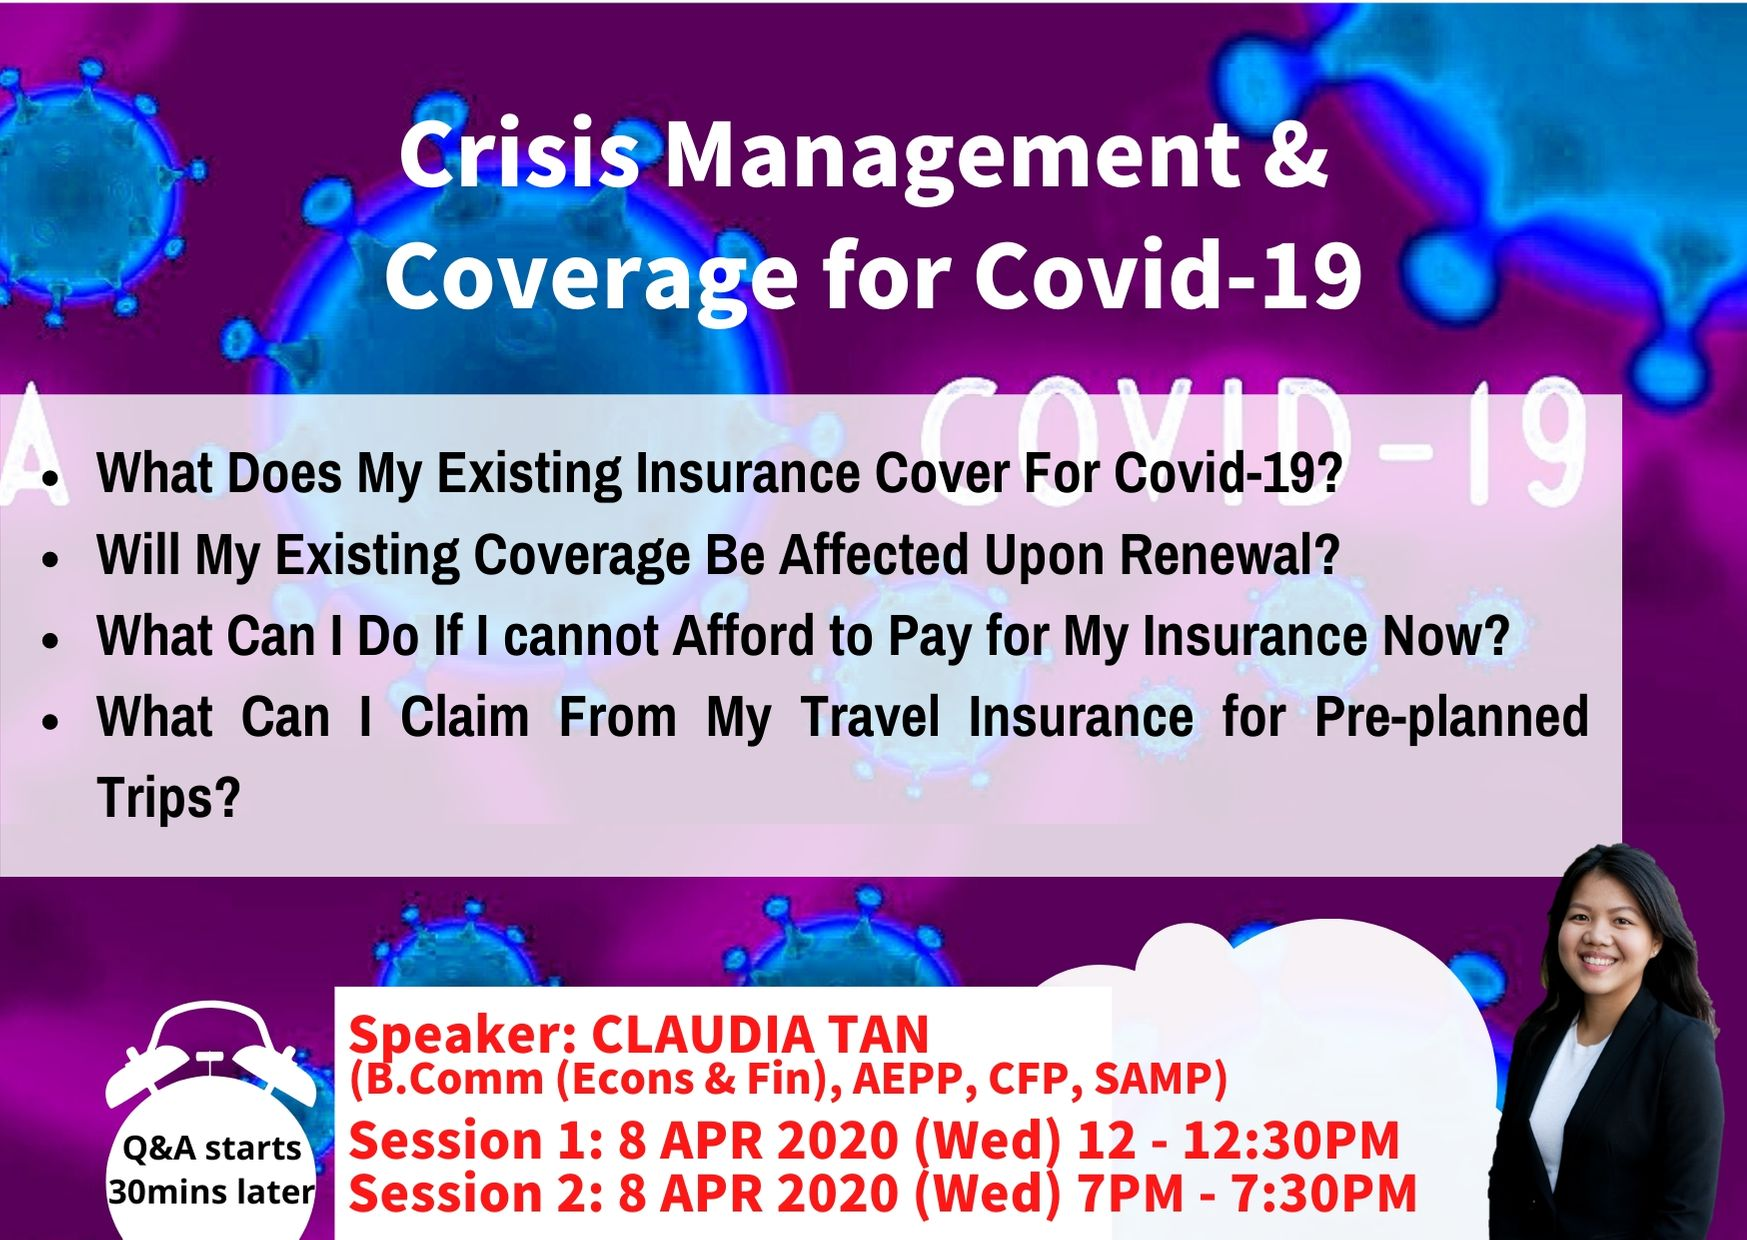 Covid Crisis Management & Coverage | ACTS-tensive Wealth ...